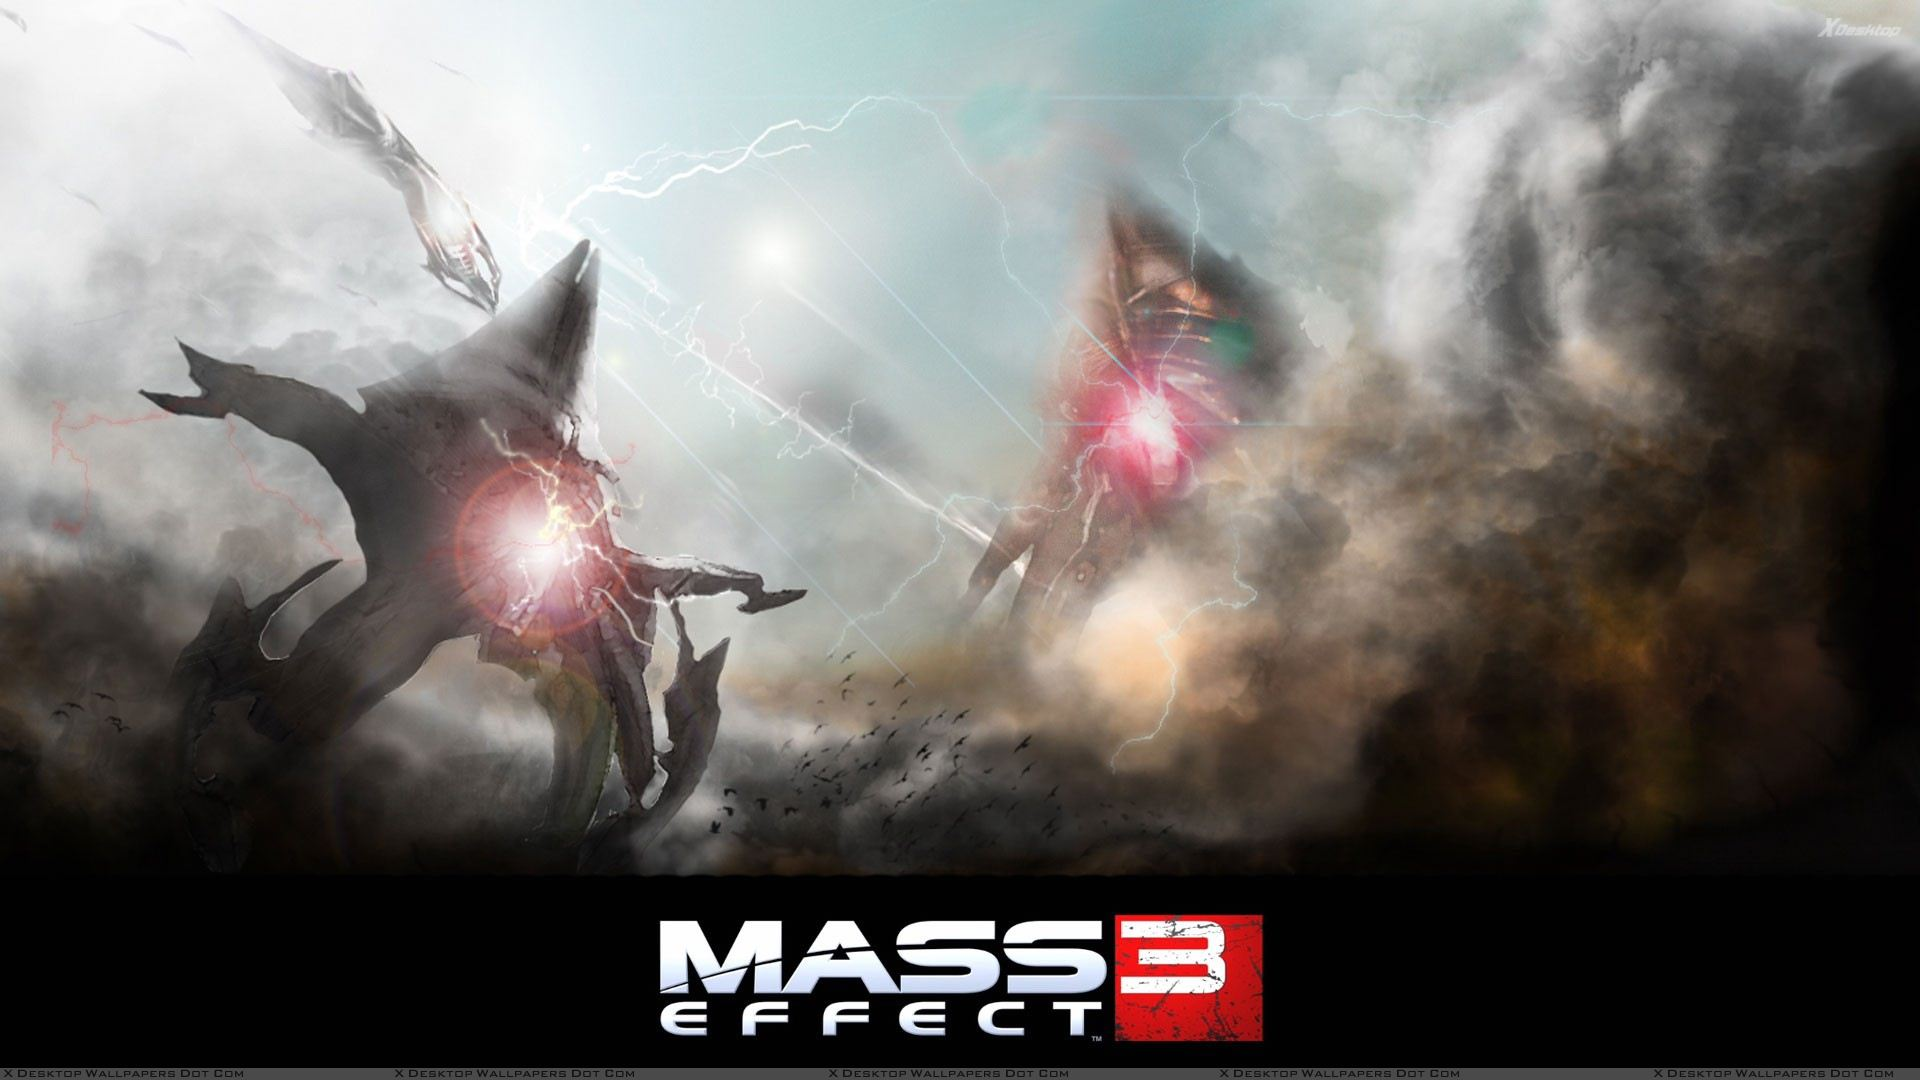 Mass Effect 3 Wallpapers Photos Images In Hd